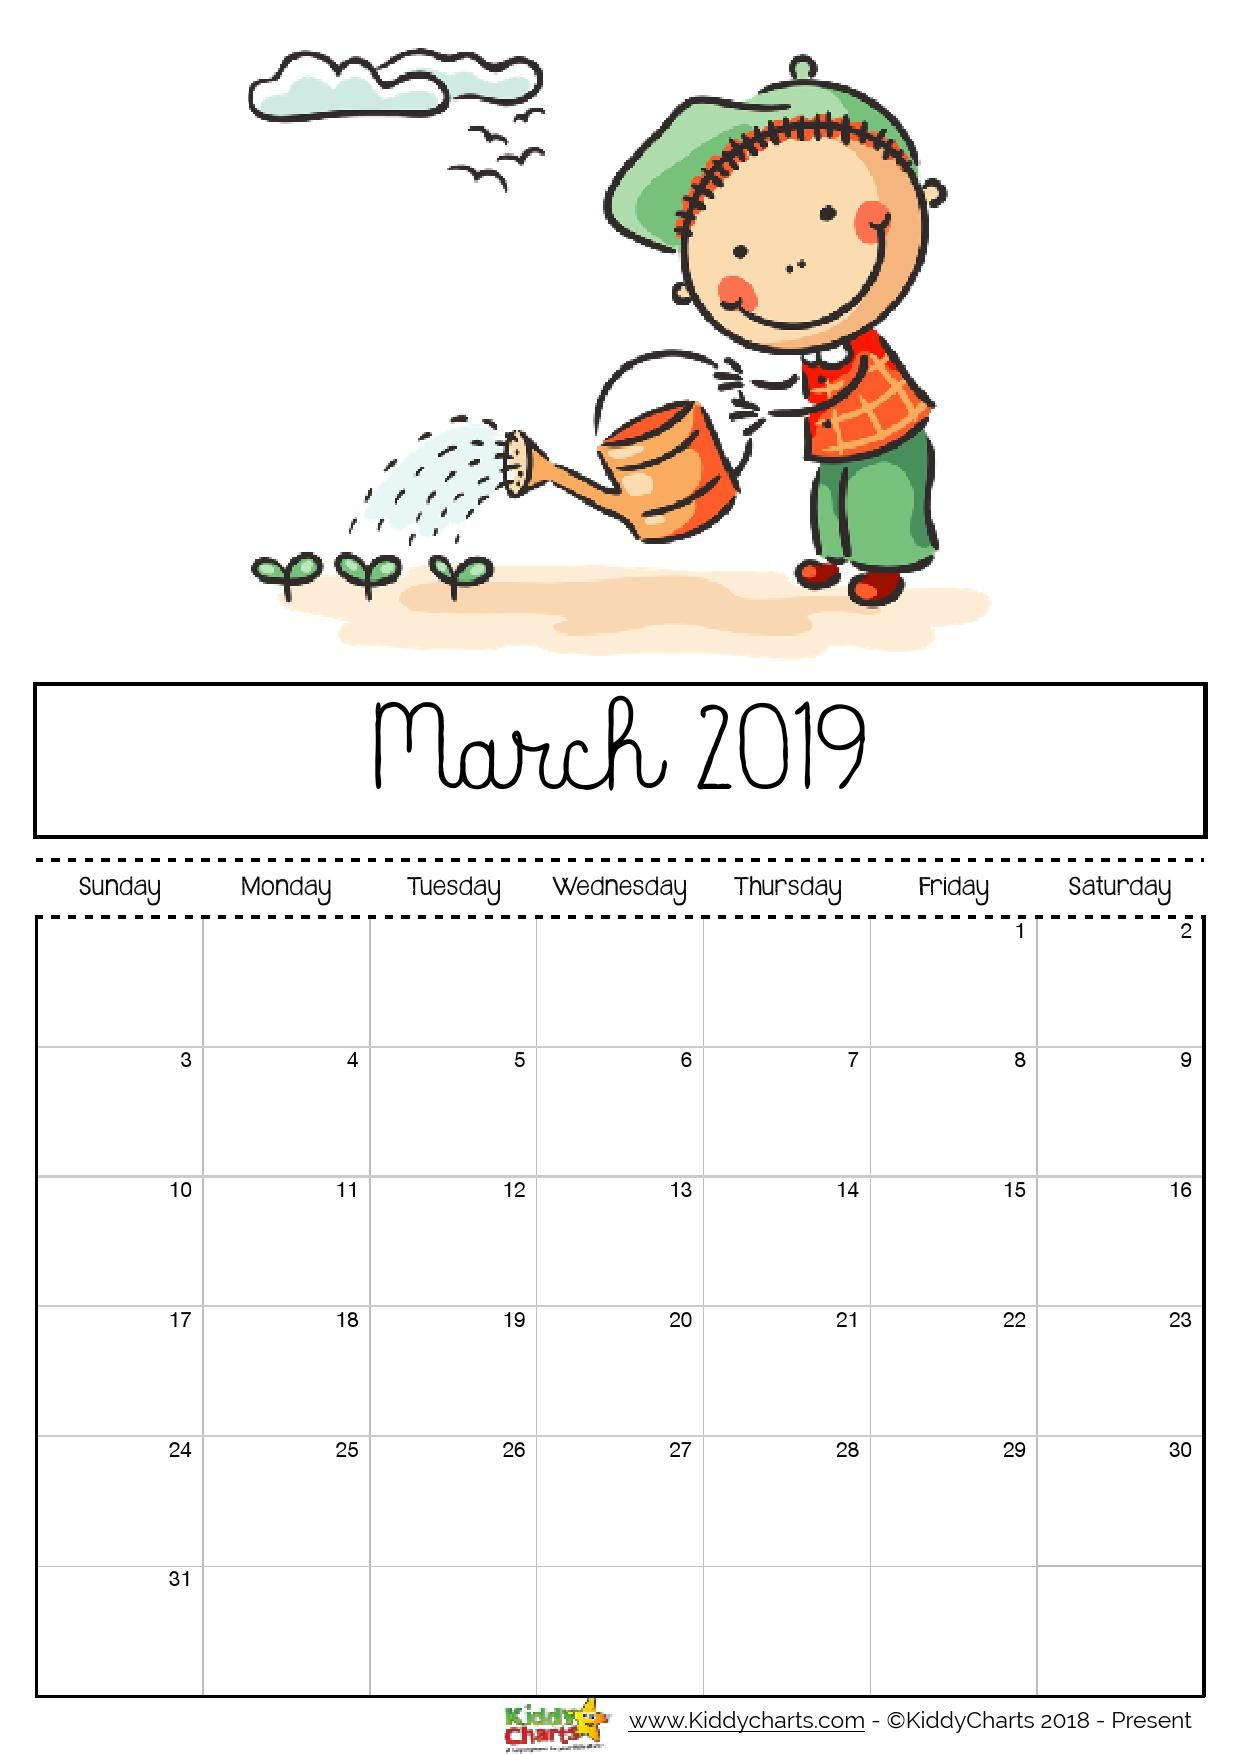 Check Out Our Fantastic Free Calendar For Your Child